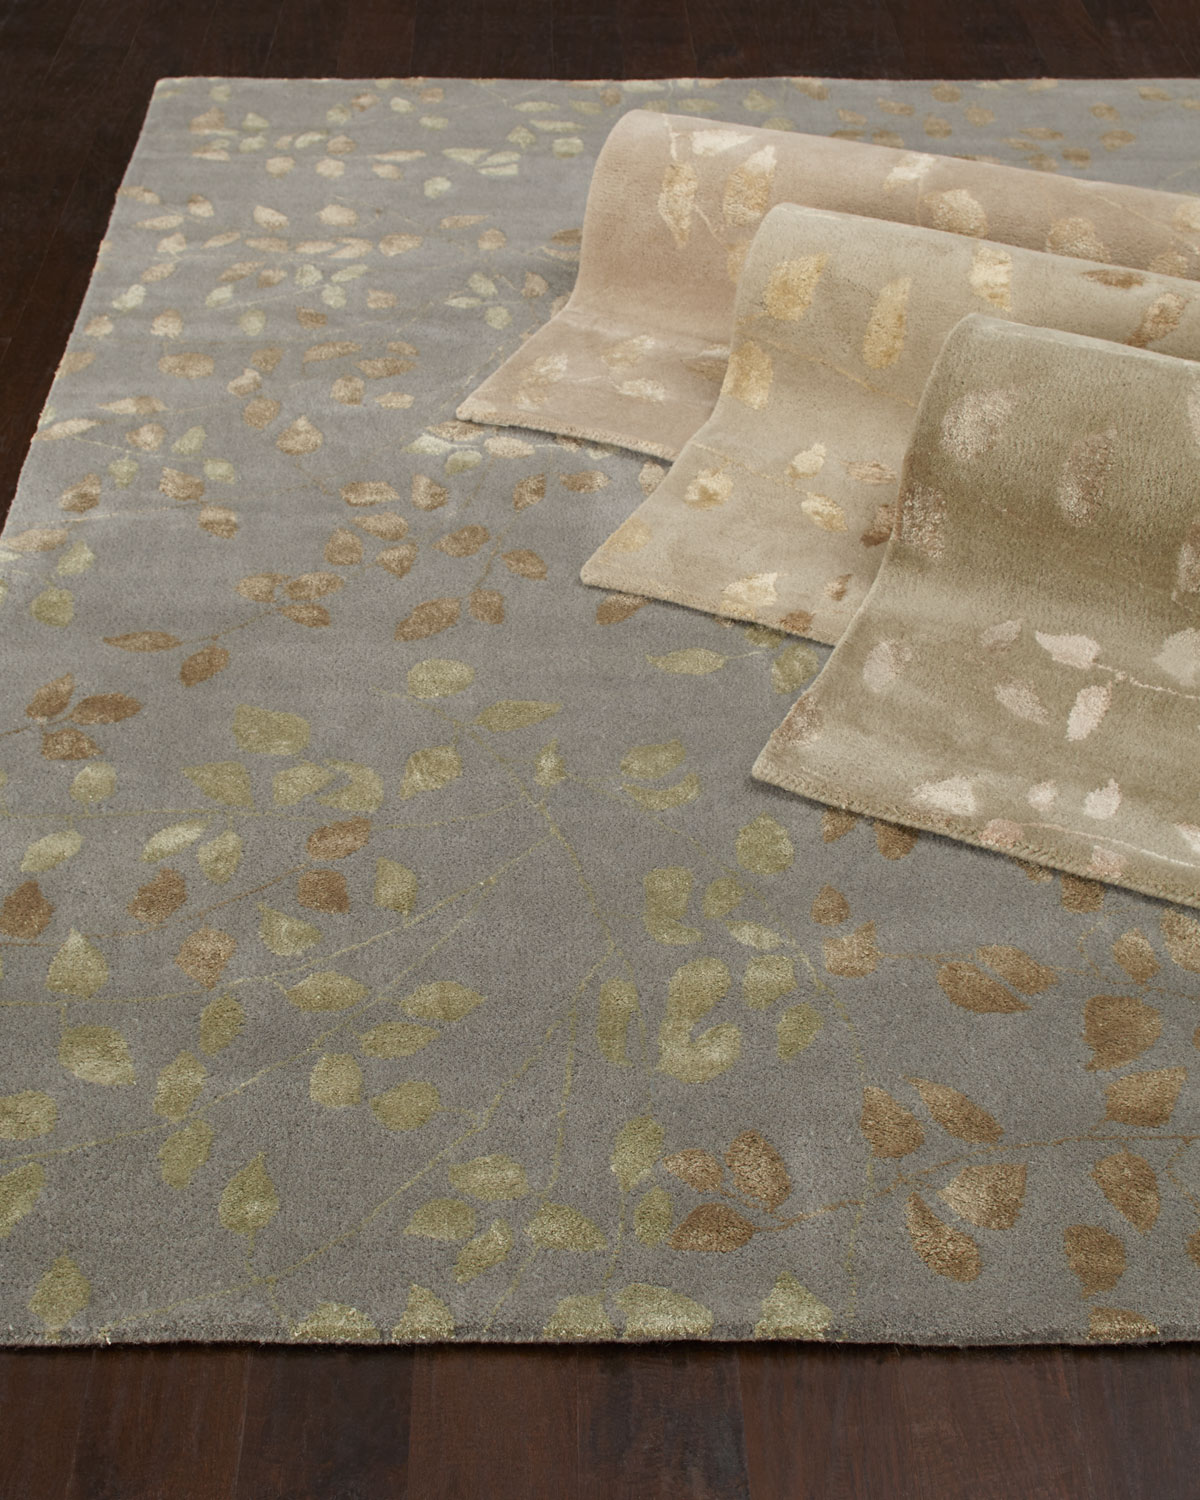 Tufted Leaves Rug, 8' x 10' Product Image